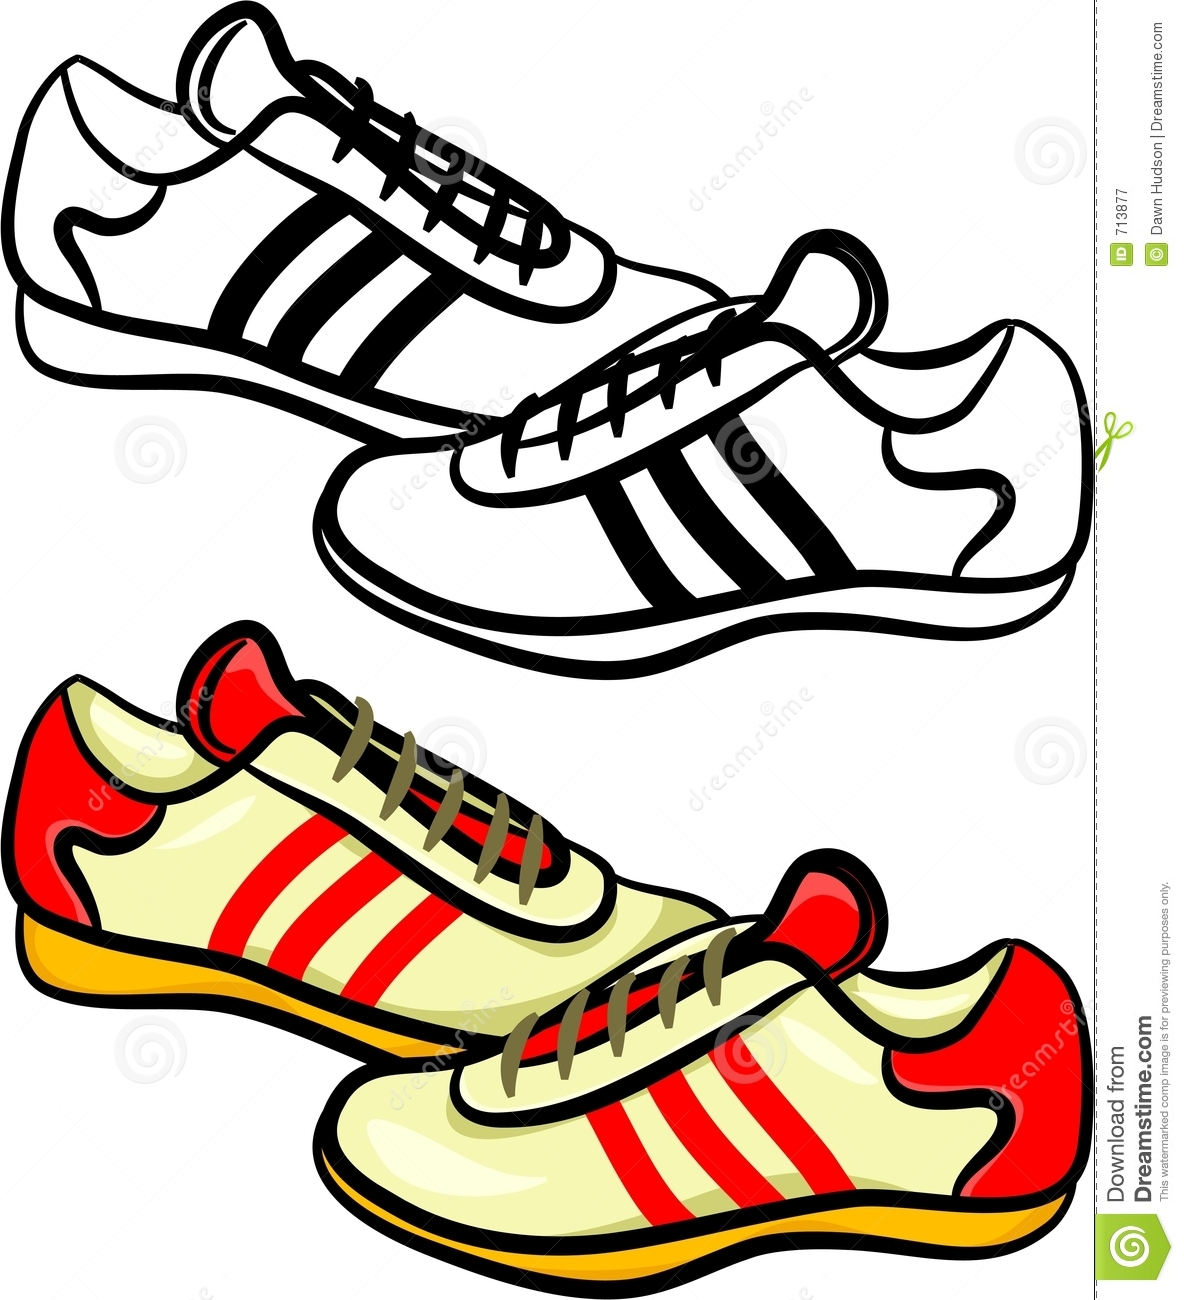 trainers stock illustrations clipart panda free cross country clip art images cross country clip art blue